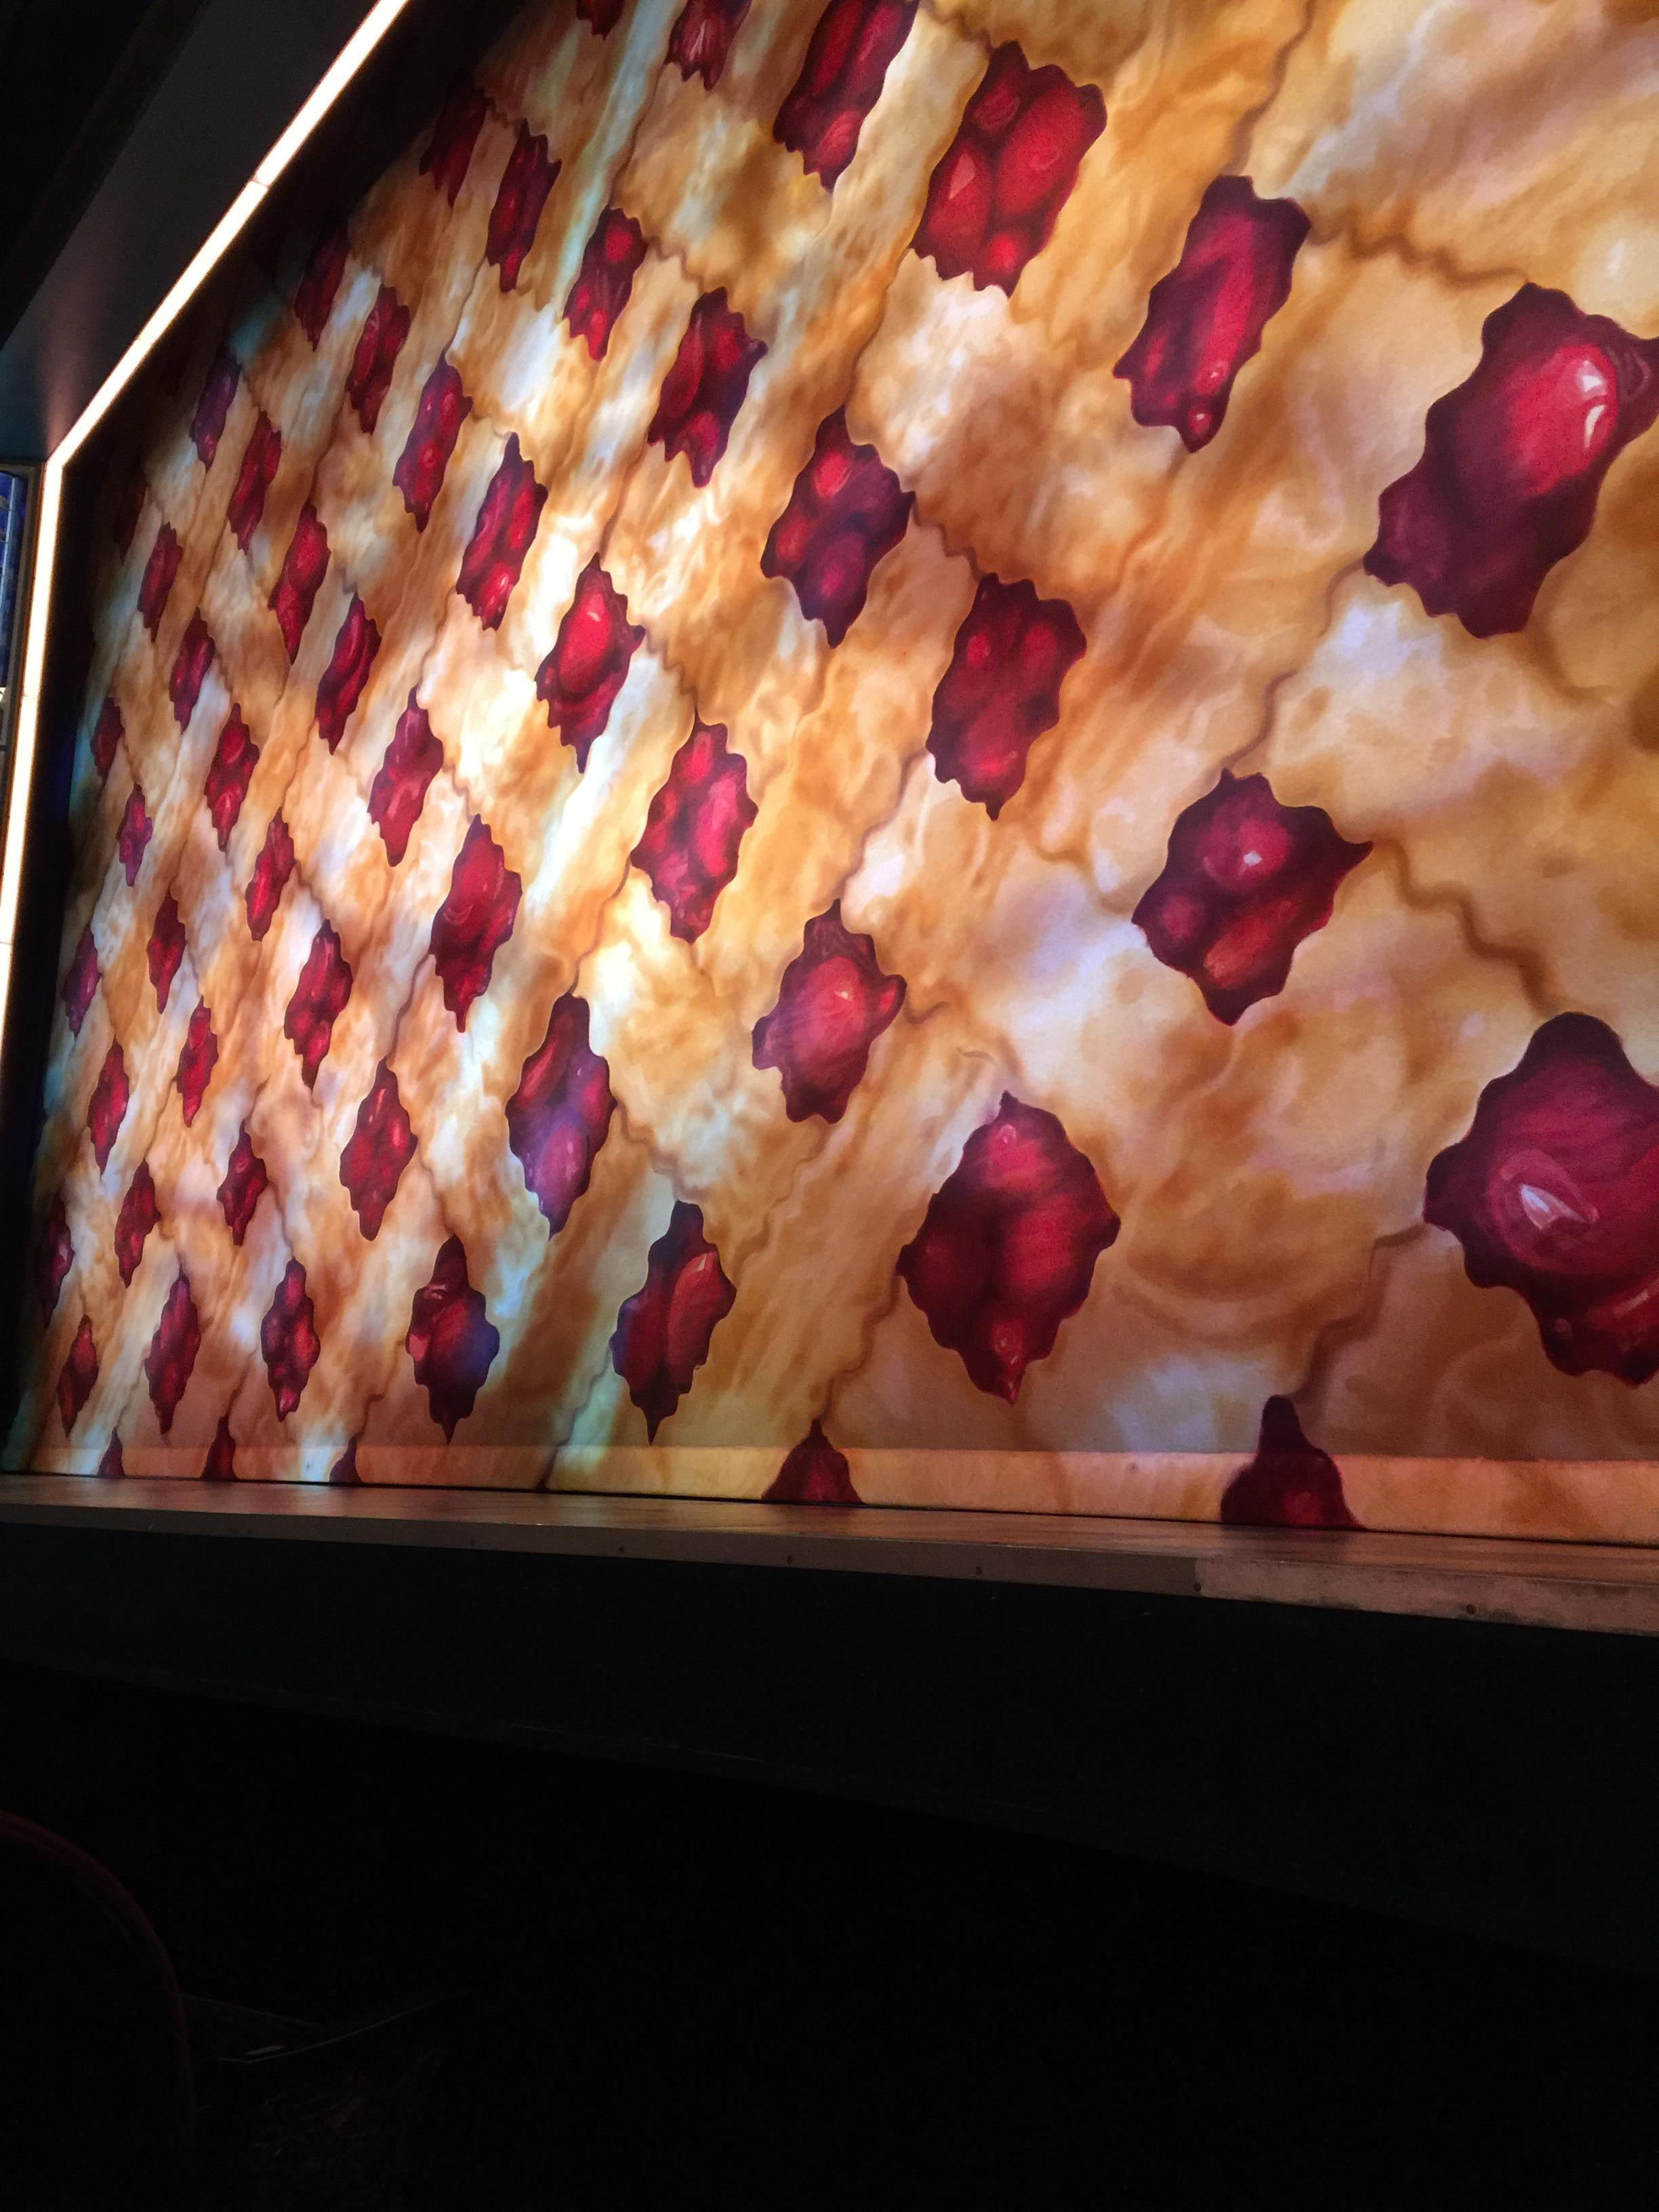 Brooks Atkinson Theatre Section Orchestra R Row AA Seat 4